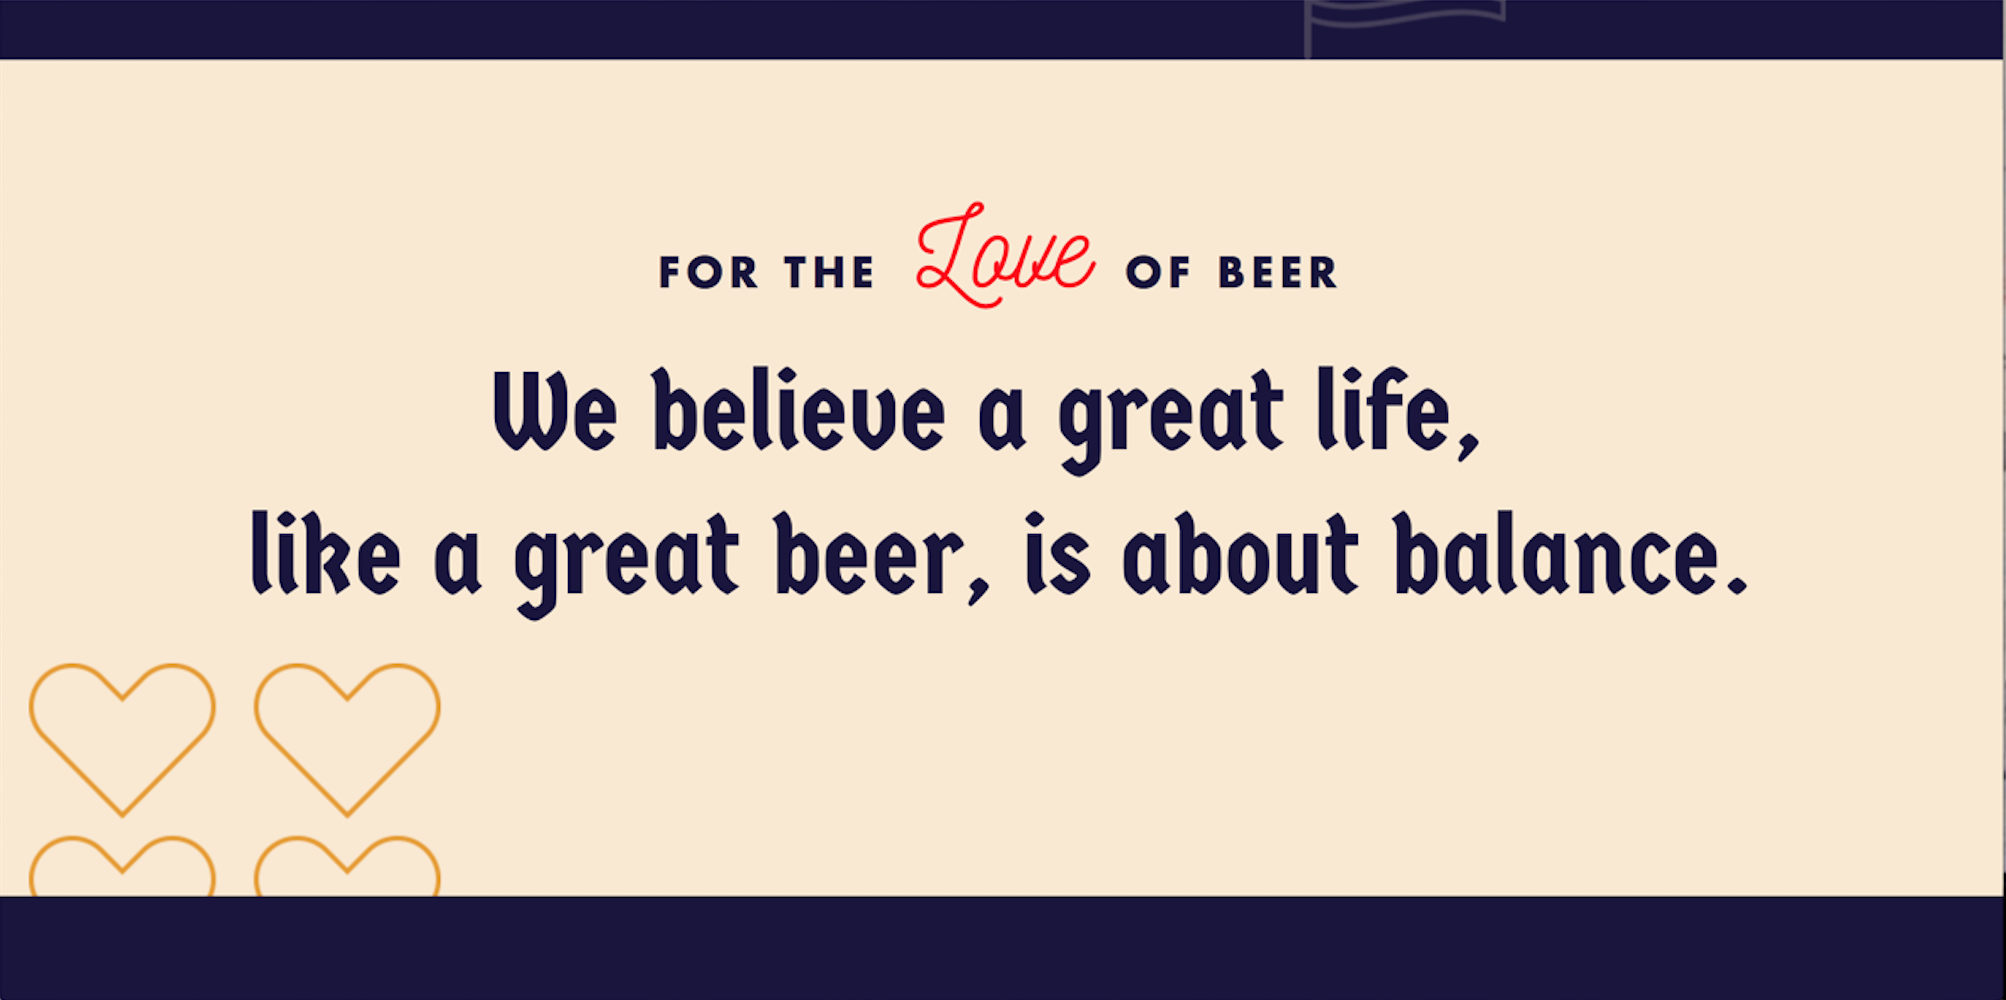 The new tagline for Gluek Beer's glorious resurrection!